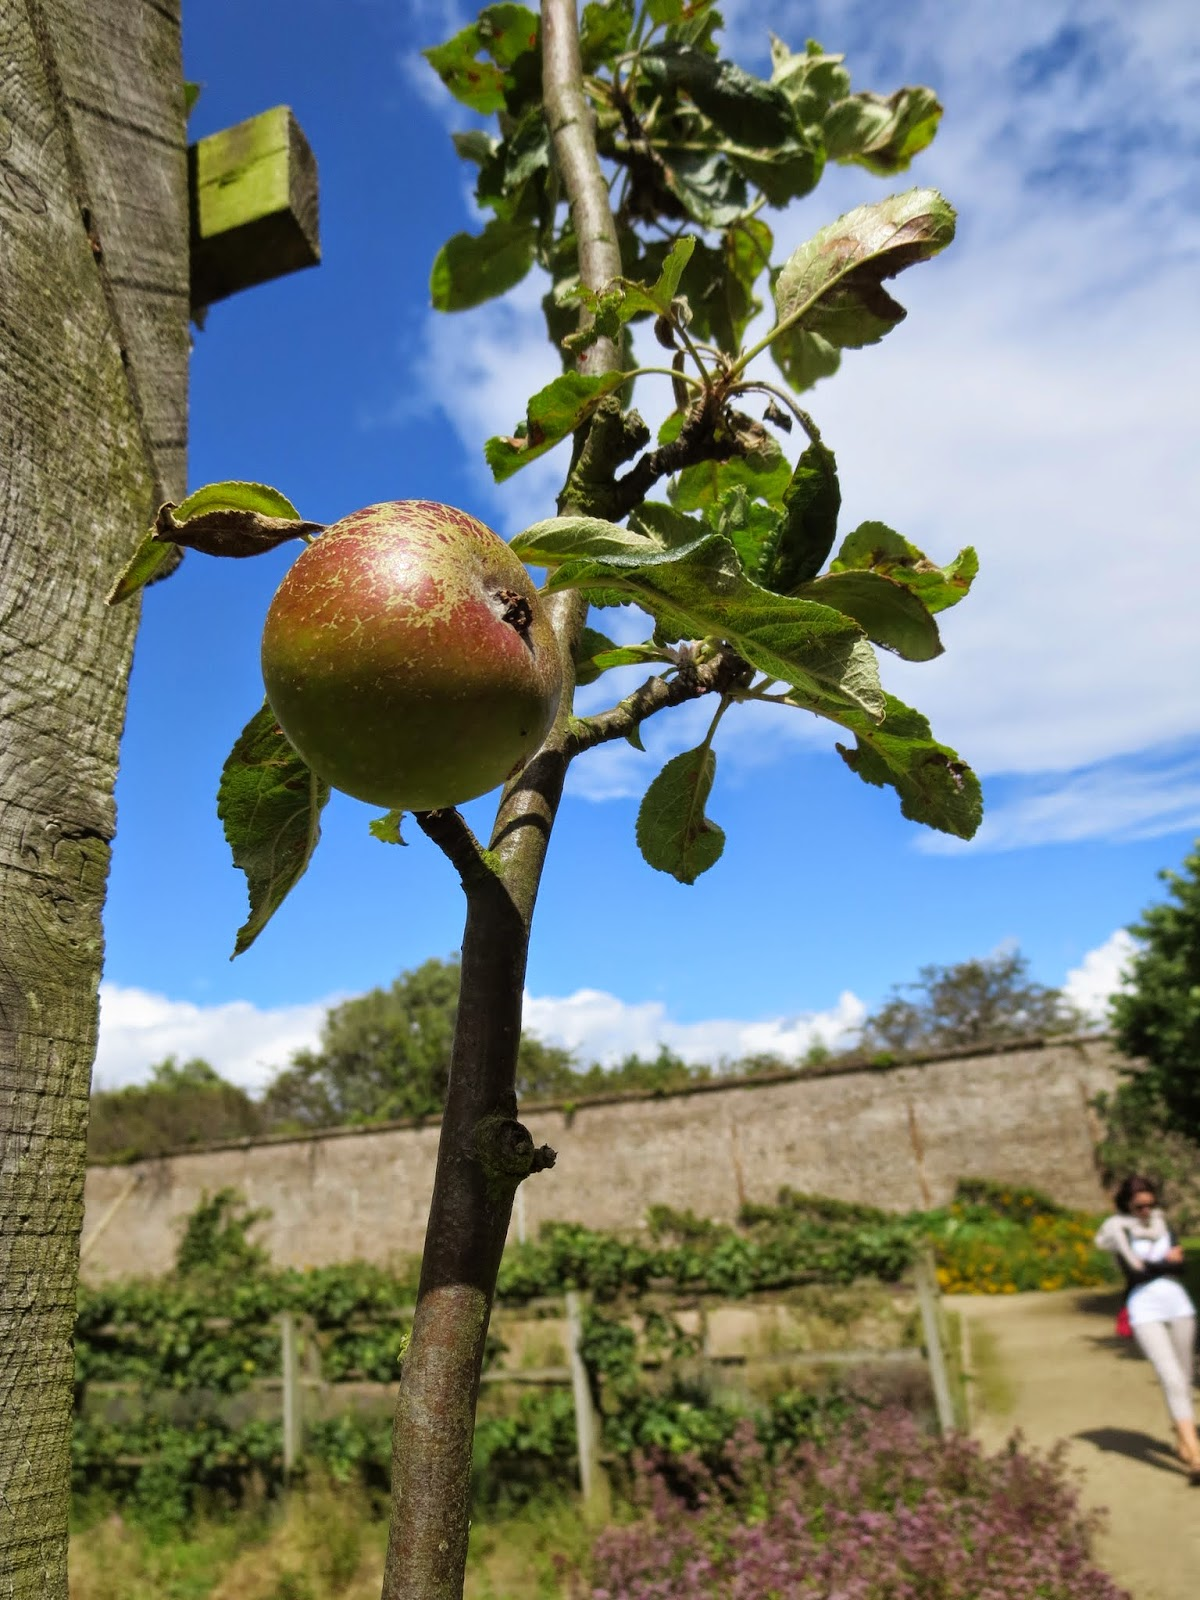 Apple plants in the walled garden in Marlay Park